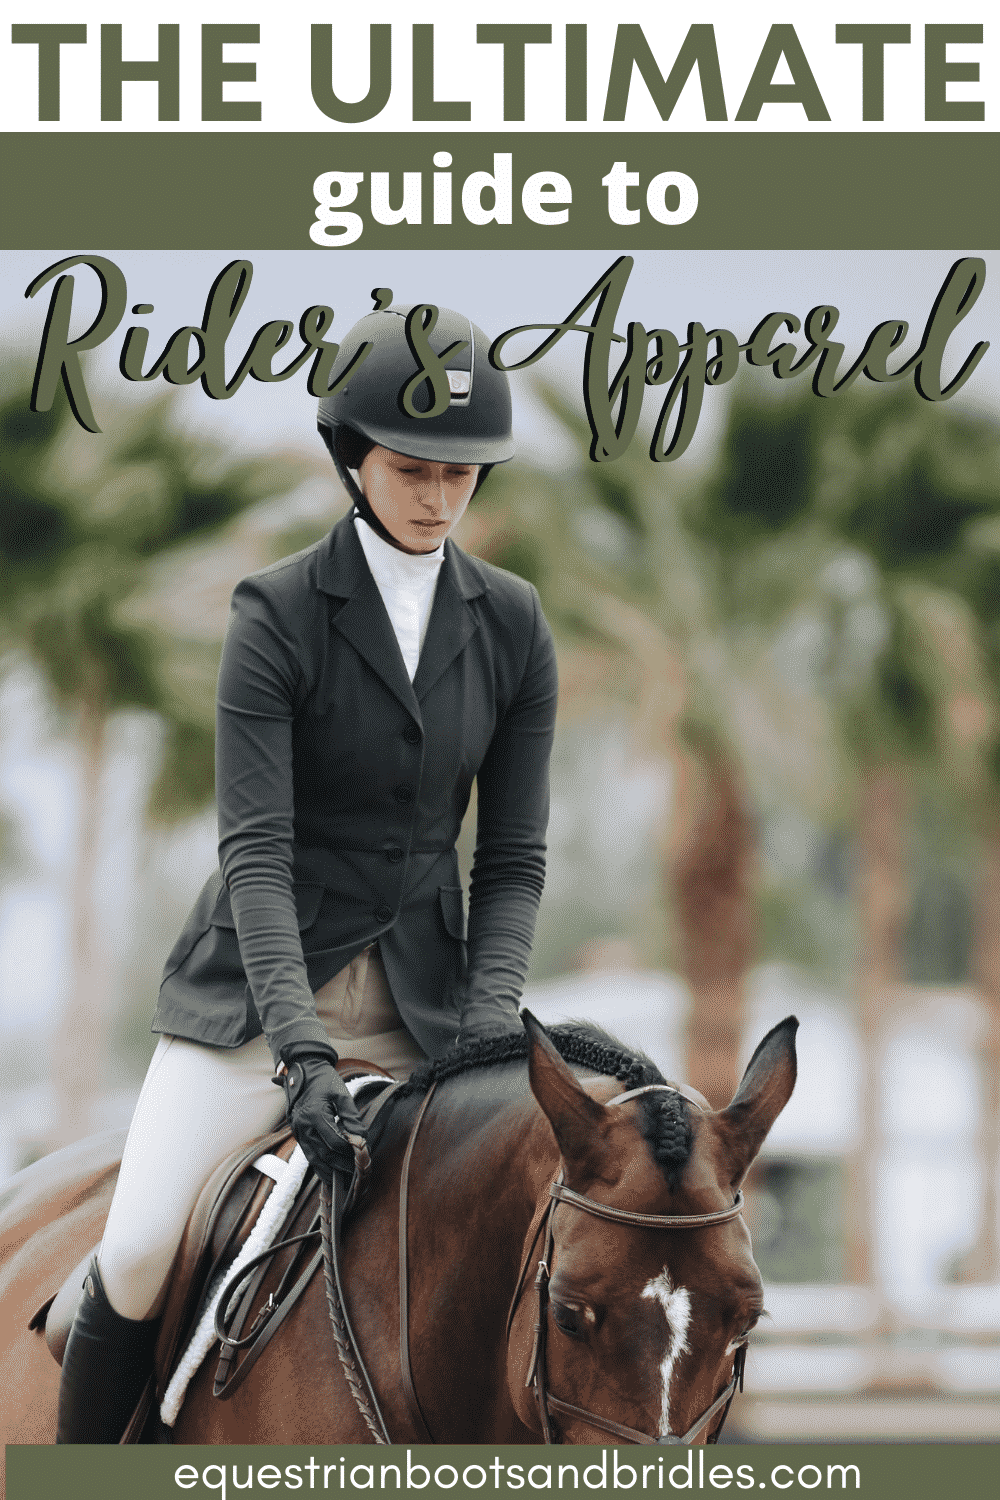 Rider's Gear and Apparel